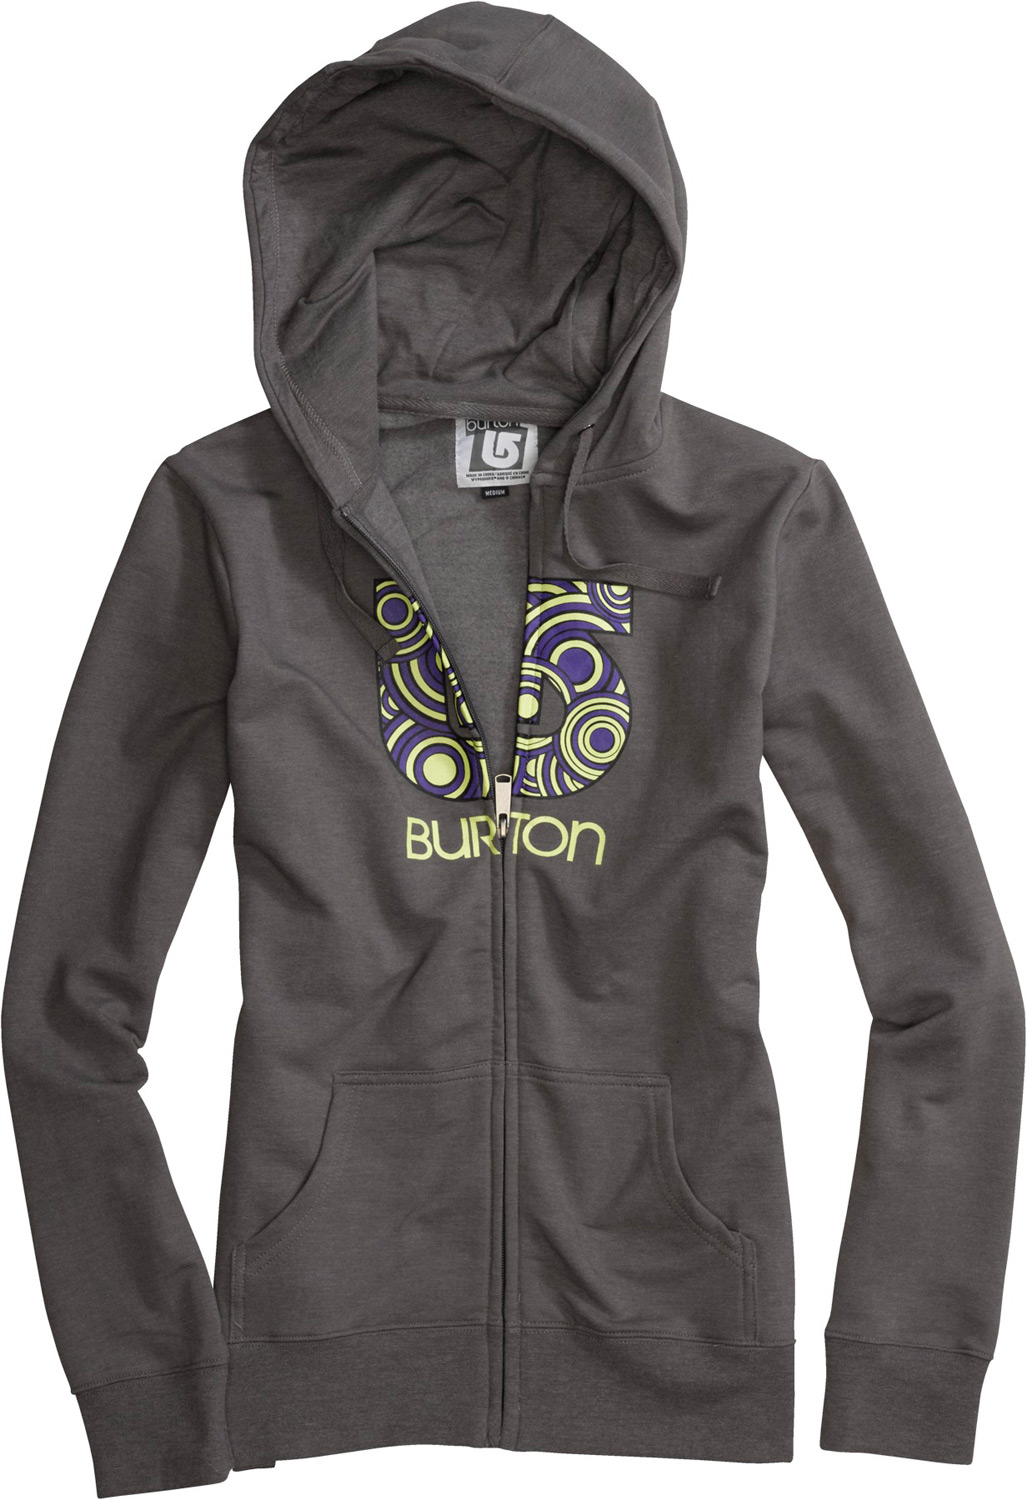 Snowboard Key Features of the Burton Circle Process Basic Fullzip Hoodie: 85% Cotton, 12% Polyester, 3% Spandex, 280G Fleece Screen Print at Chest Regular Fit - $55.00